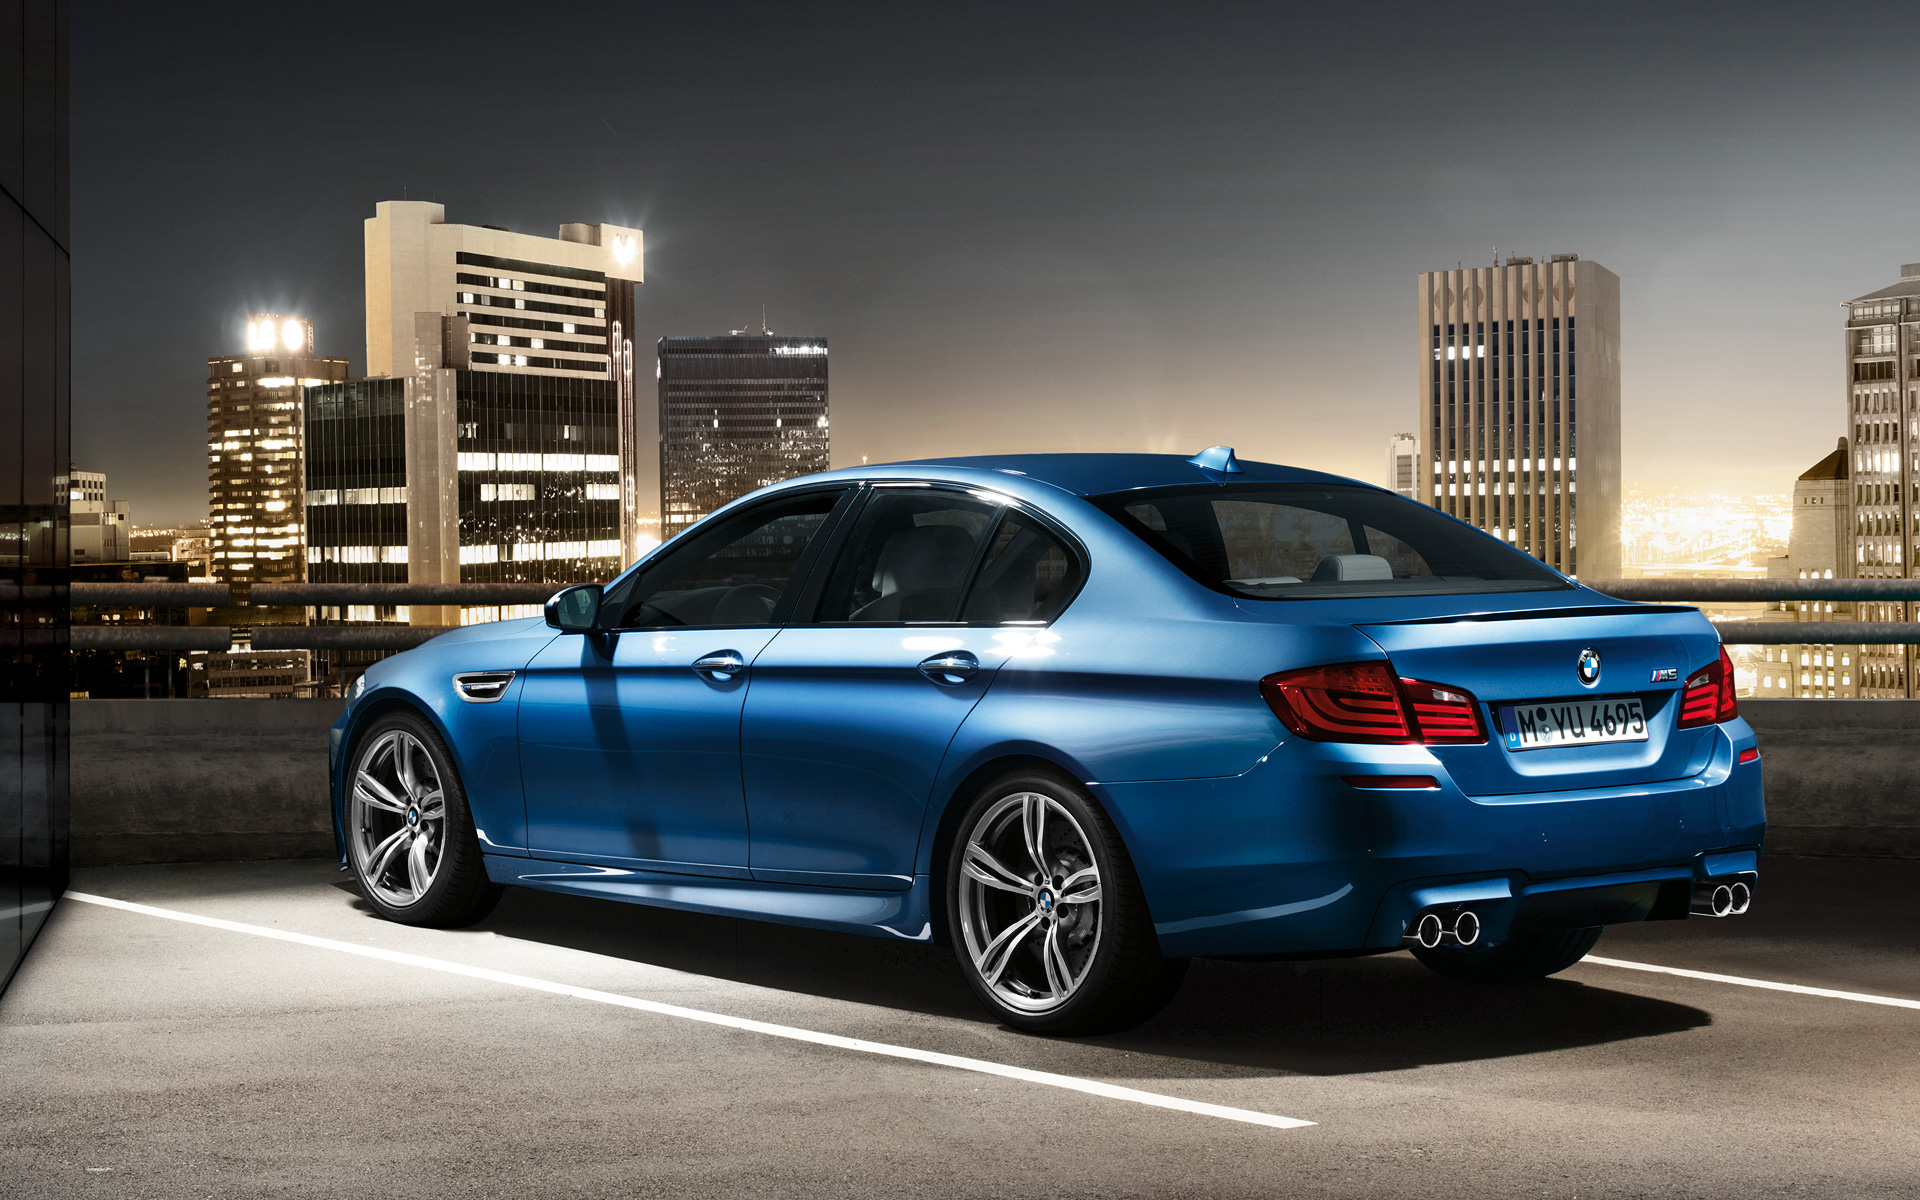 OFFICIAL BMW M5 Production pics high resolution!-02_1920x1200_bmw_f10m.jpg